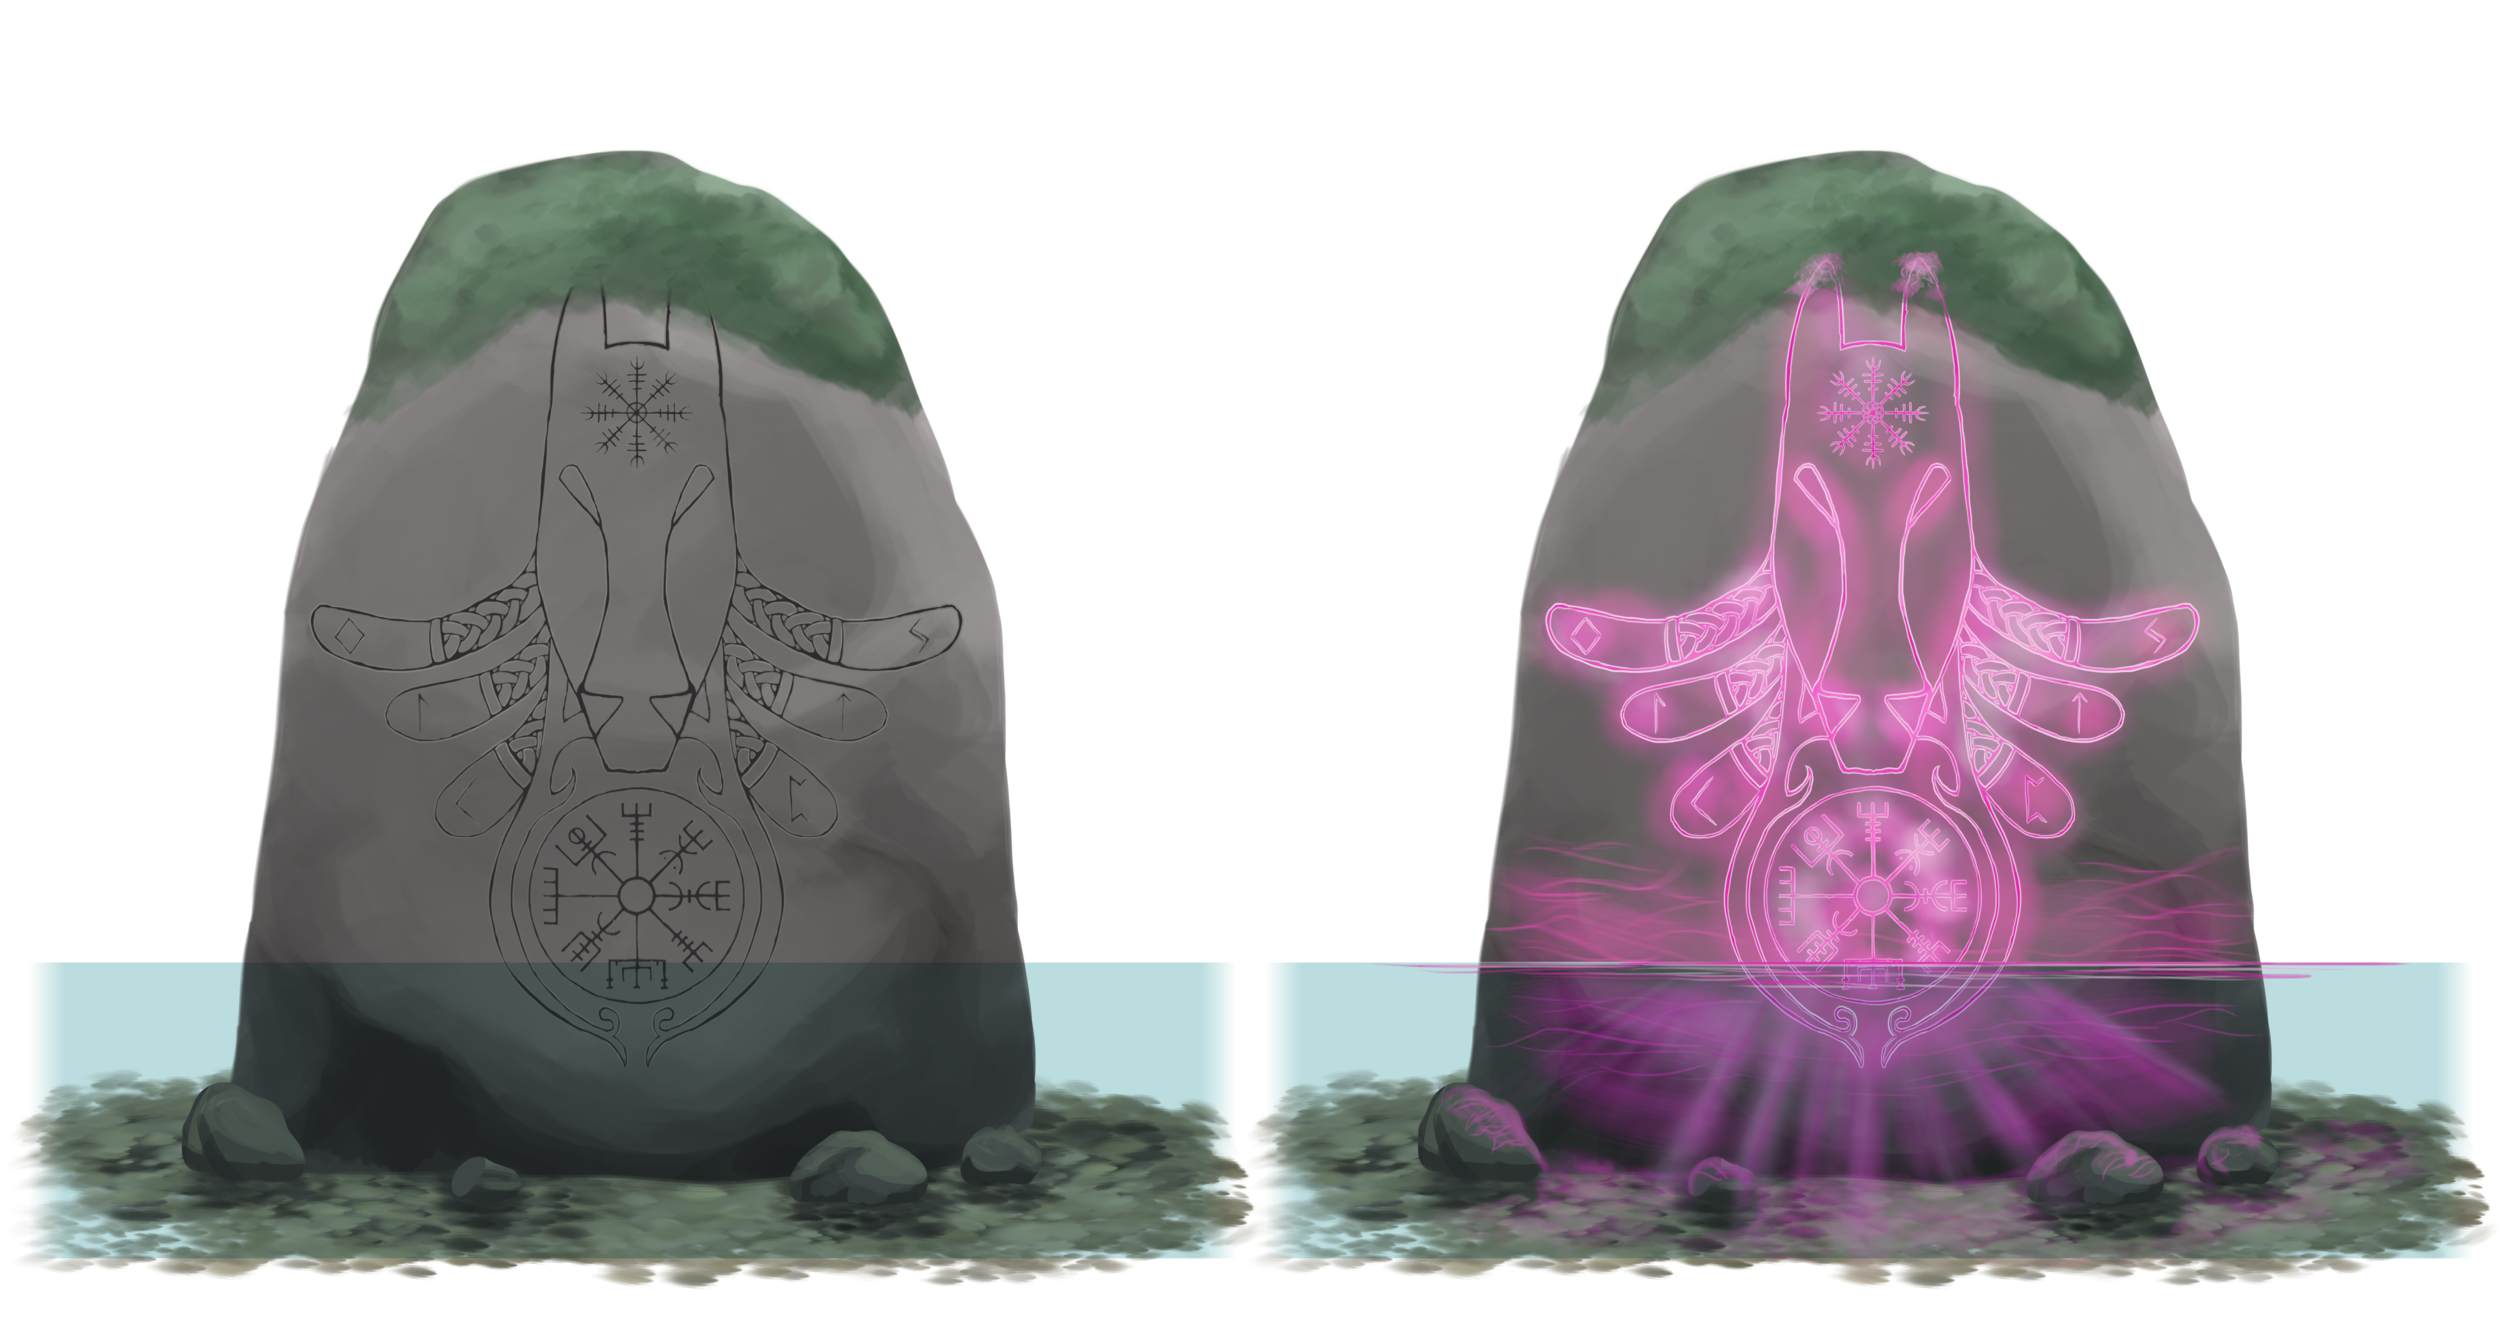 Final concept   The magical stones without and with magic